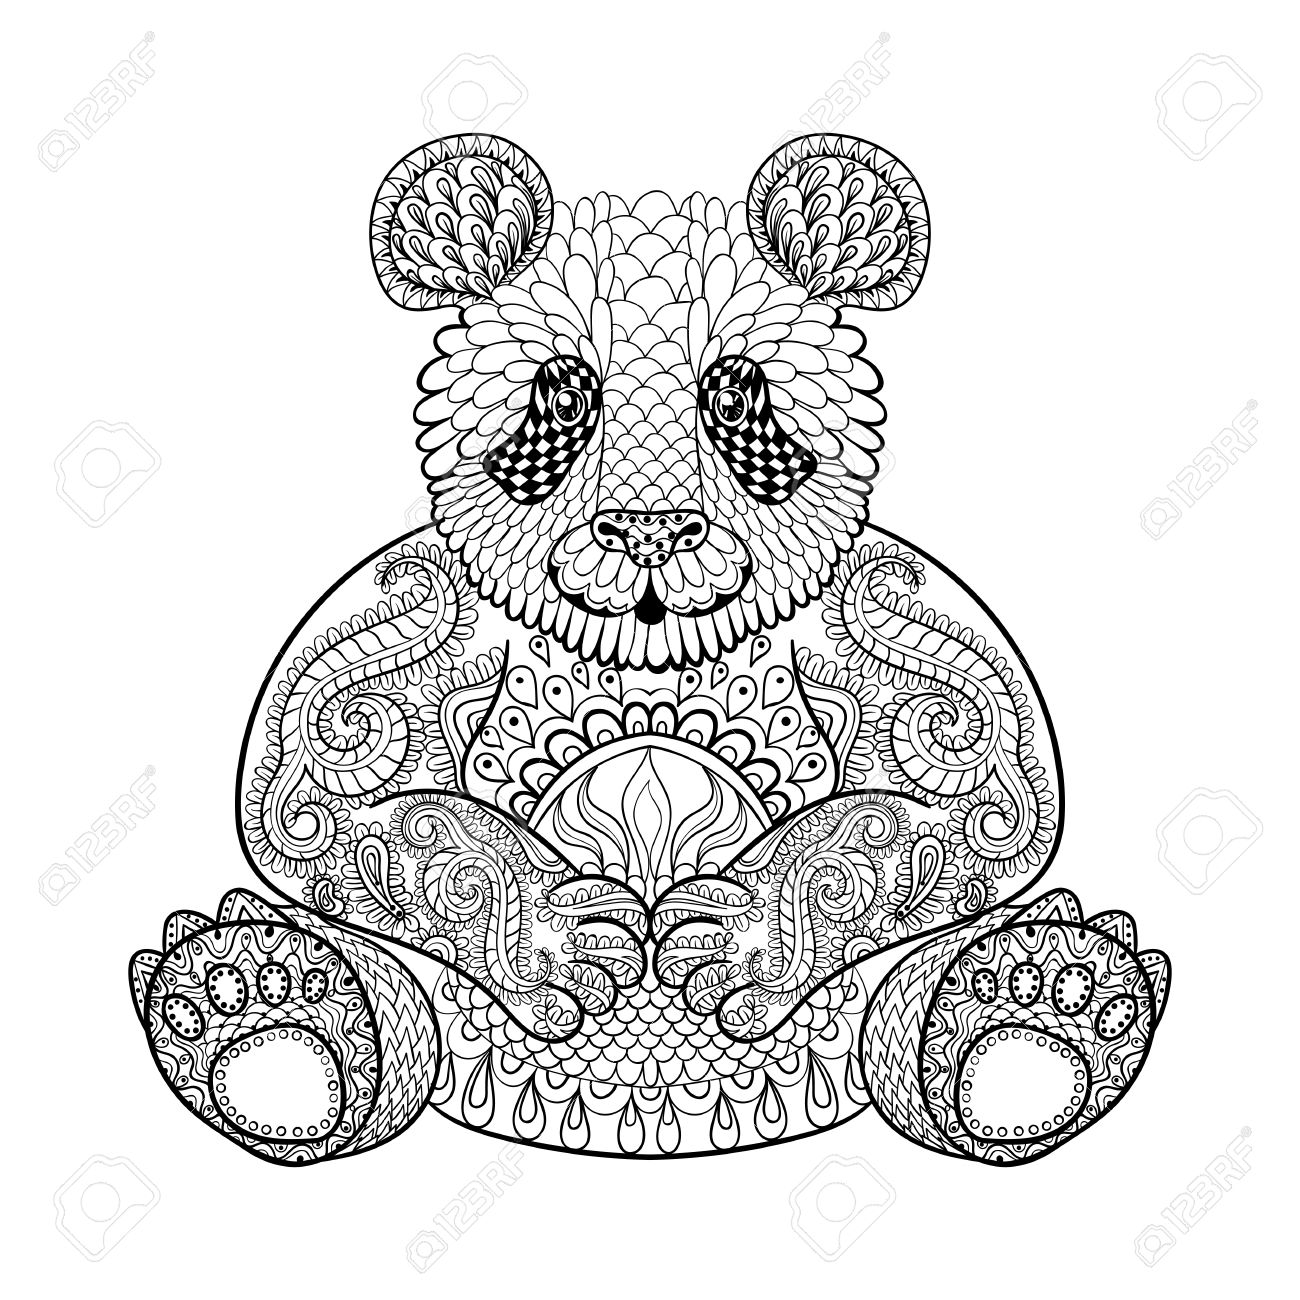 Tiré Par La Main Panda Tribal Animal Totem Pour Adultes Coloriage